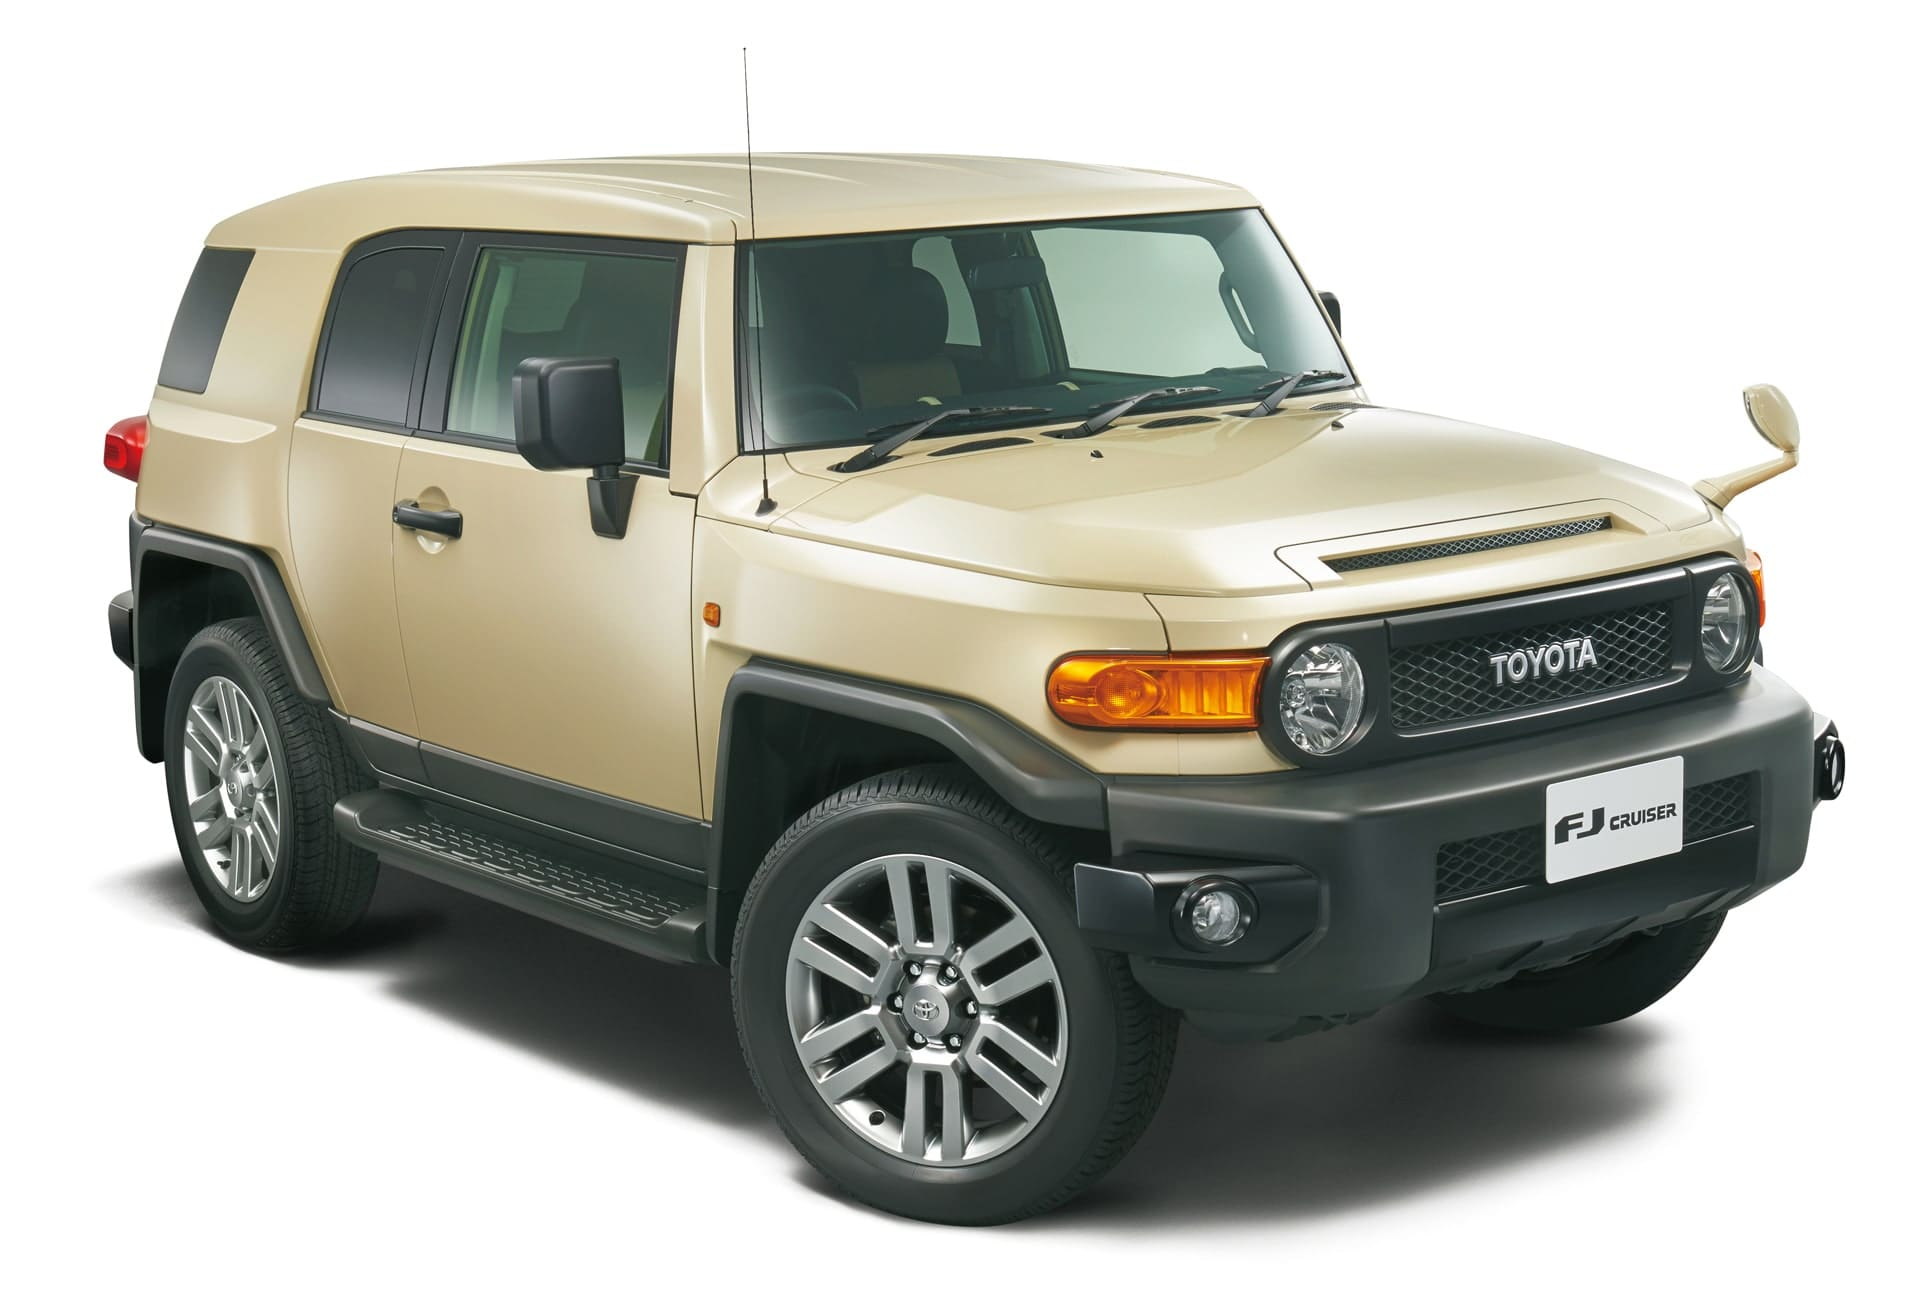 Toyota Confirms Toyota FJ Cruiser's Demise with 'Final Edition' Model